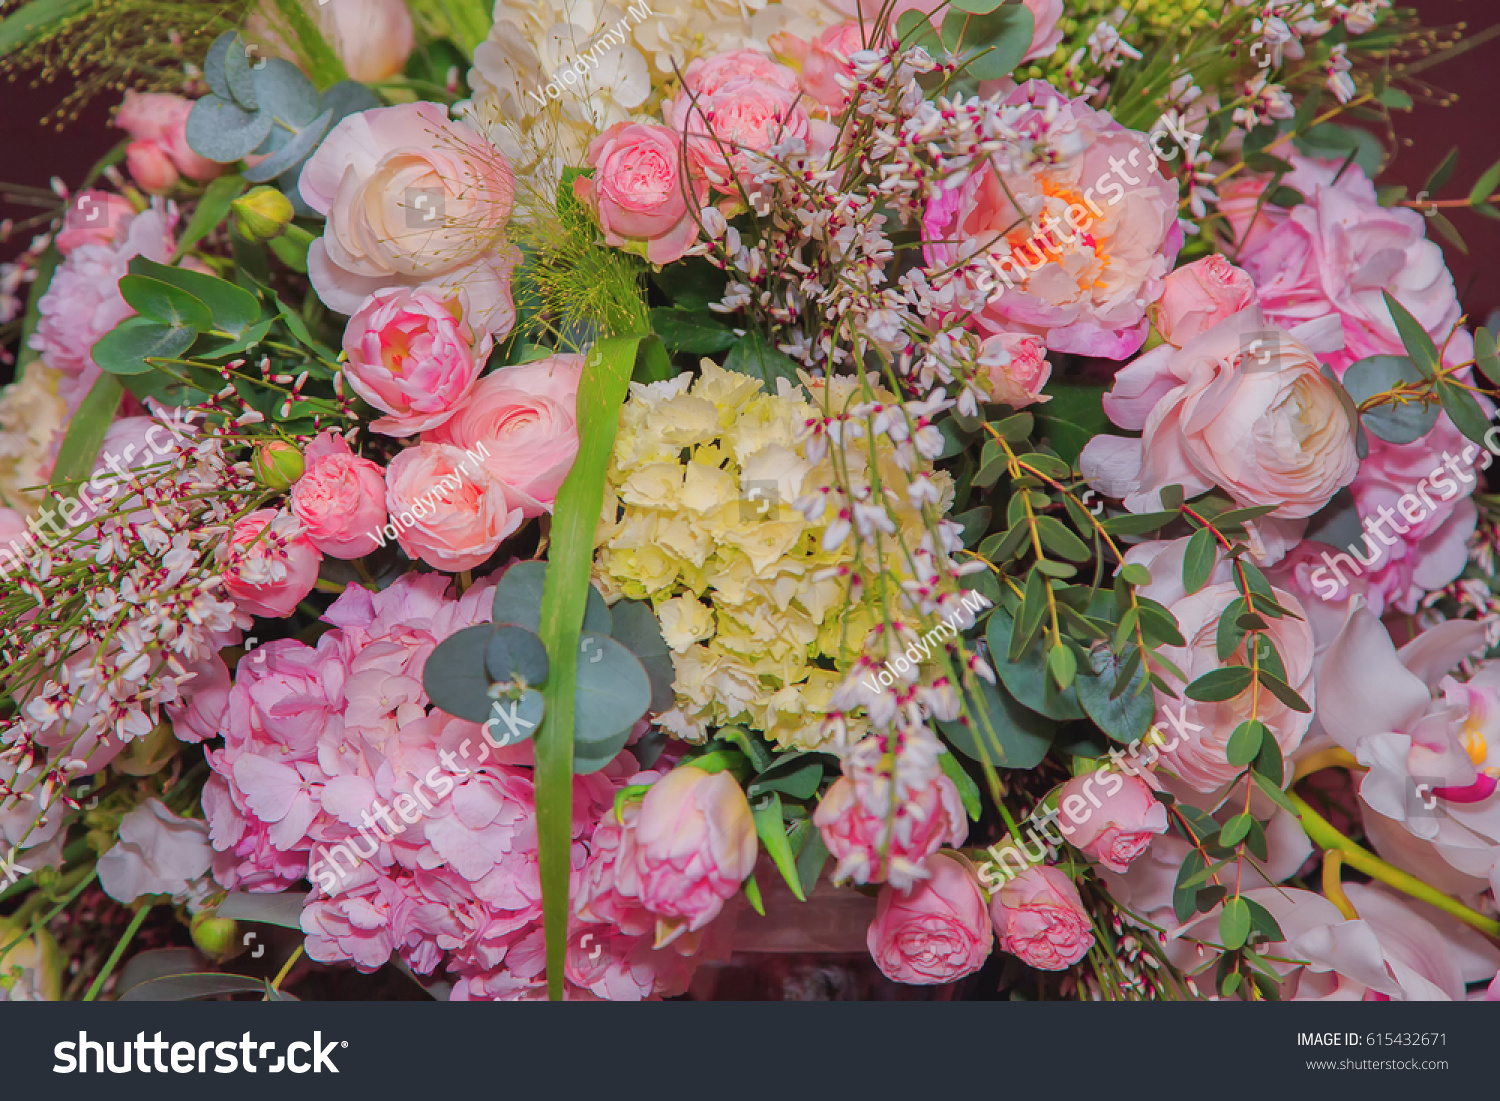 Chic bouquet different flowers close stock photo 615432671 chic bouquet of different flowers close up izmirmasajfo Gallery